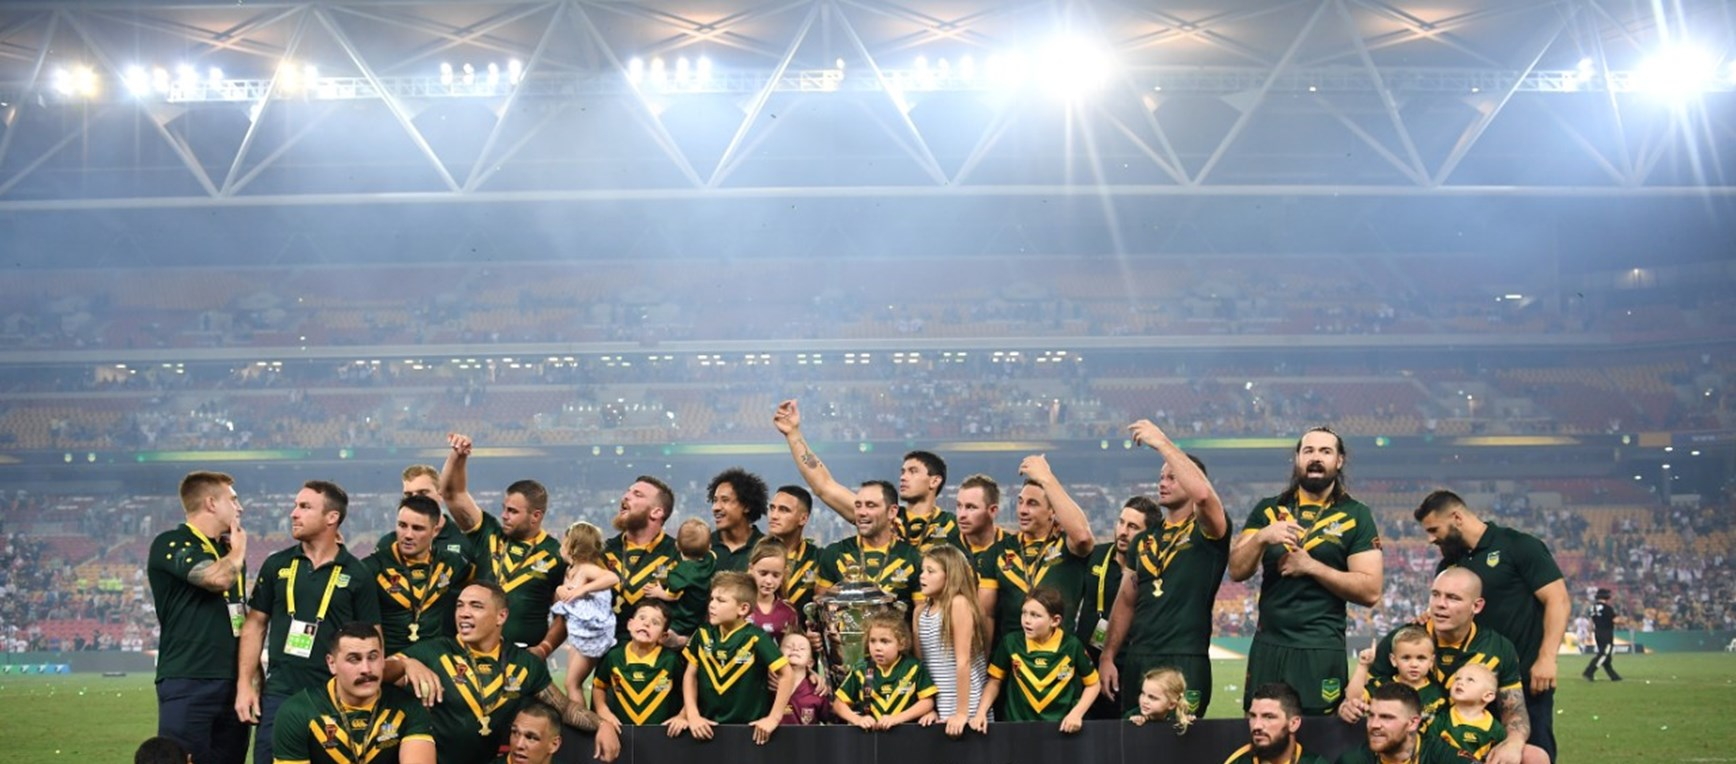 GALLERY- Kangaroos 2017 World Champions